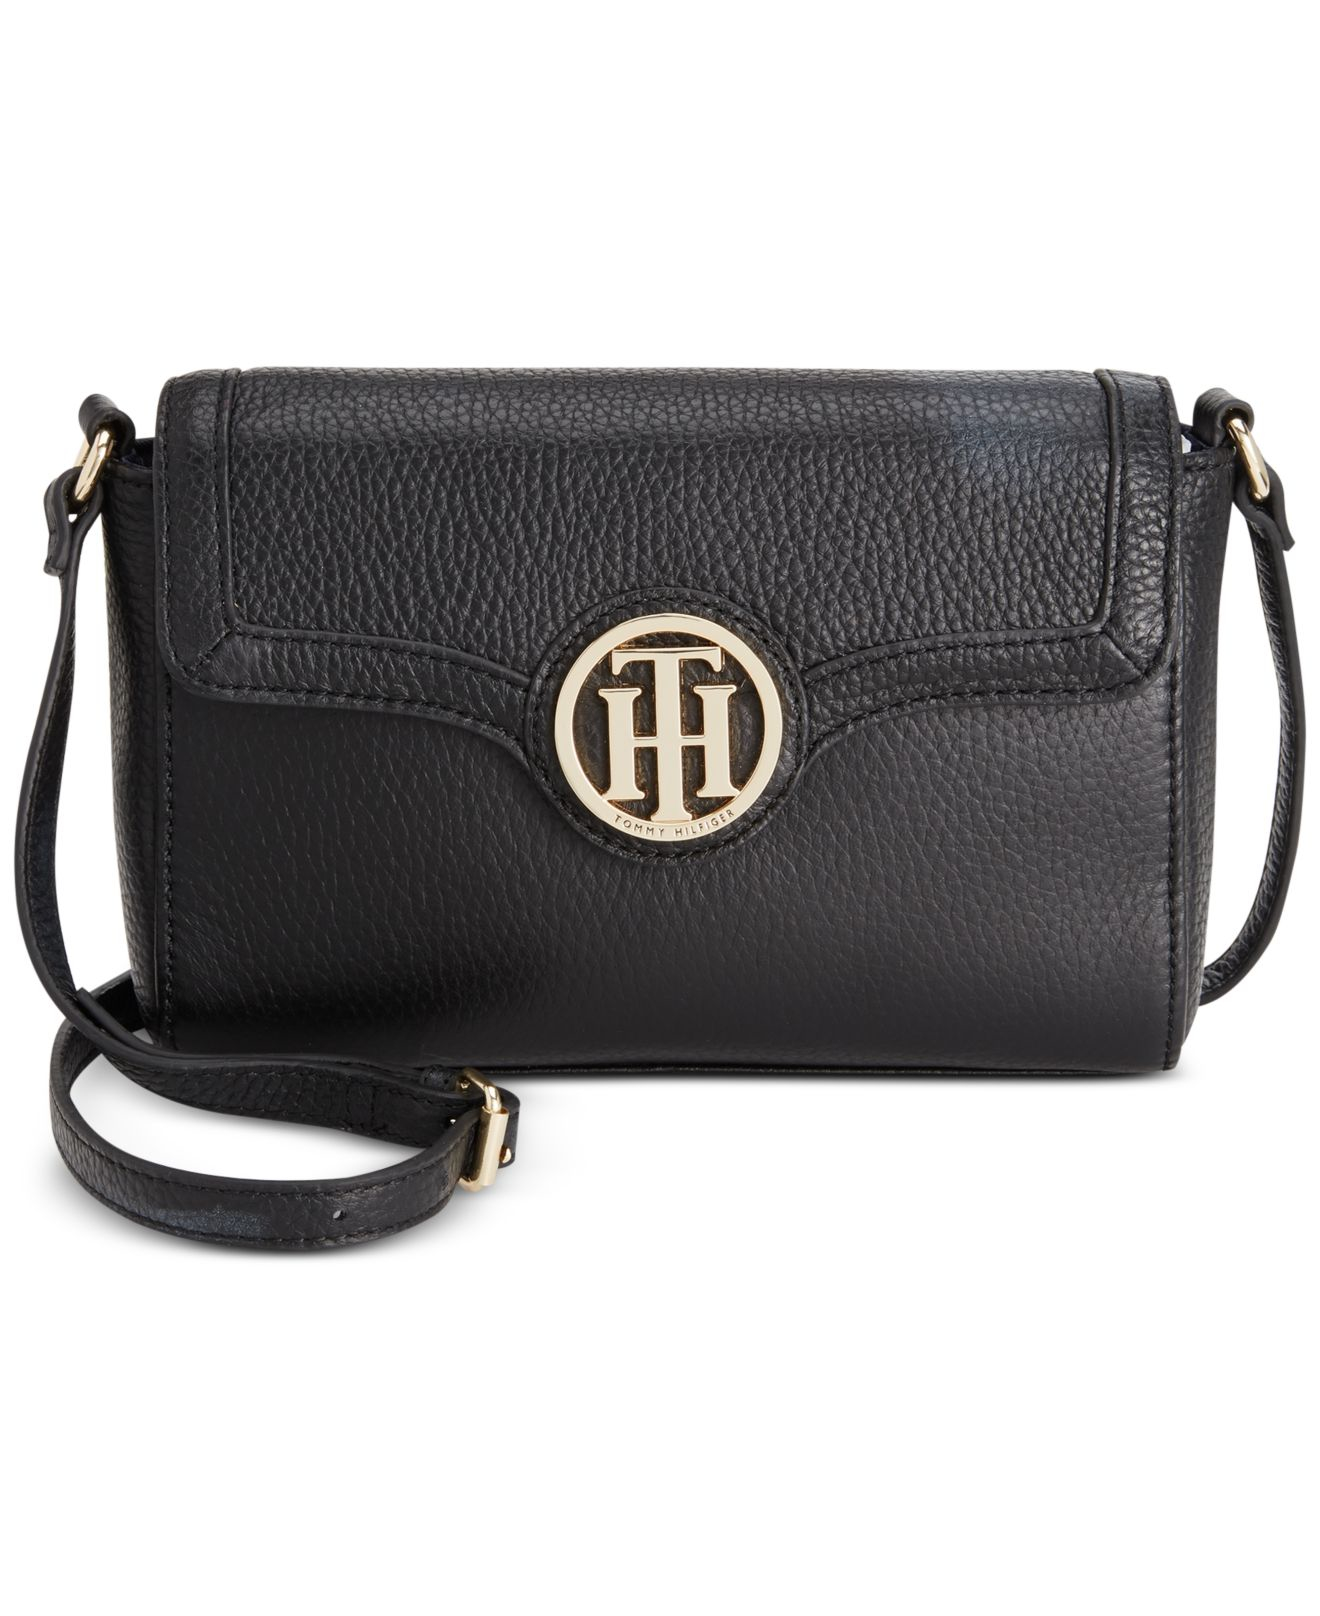 1618502b21c Tommy Hilfiger Maggie Pebble Leather Flap Crossbody in Black - Lyst